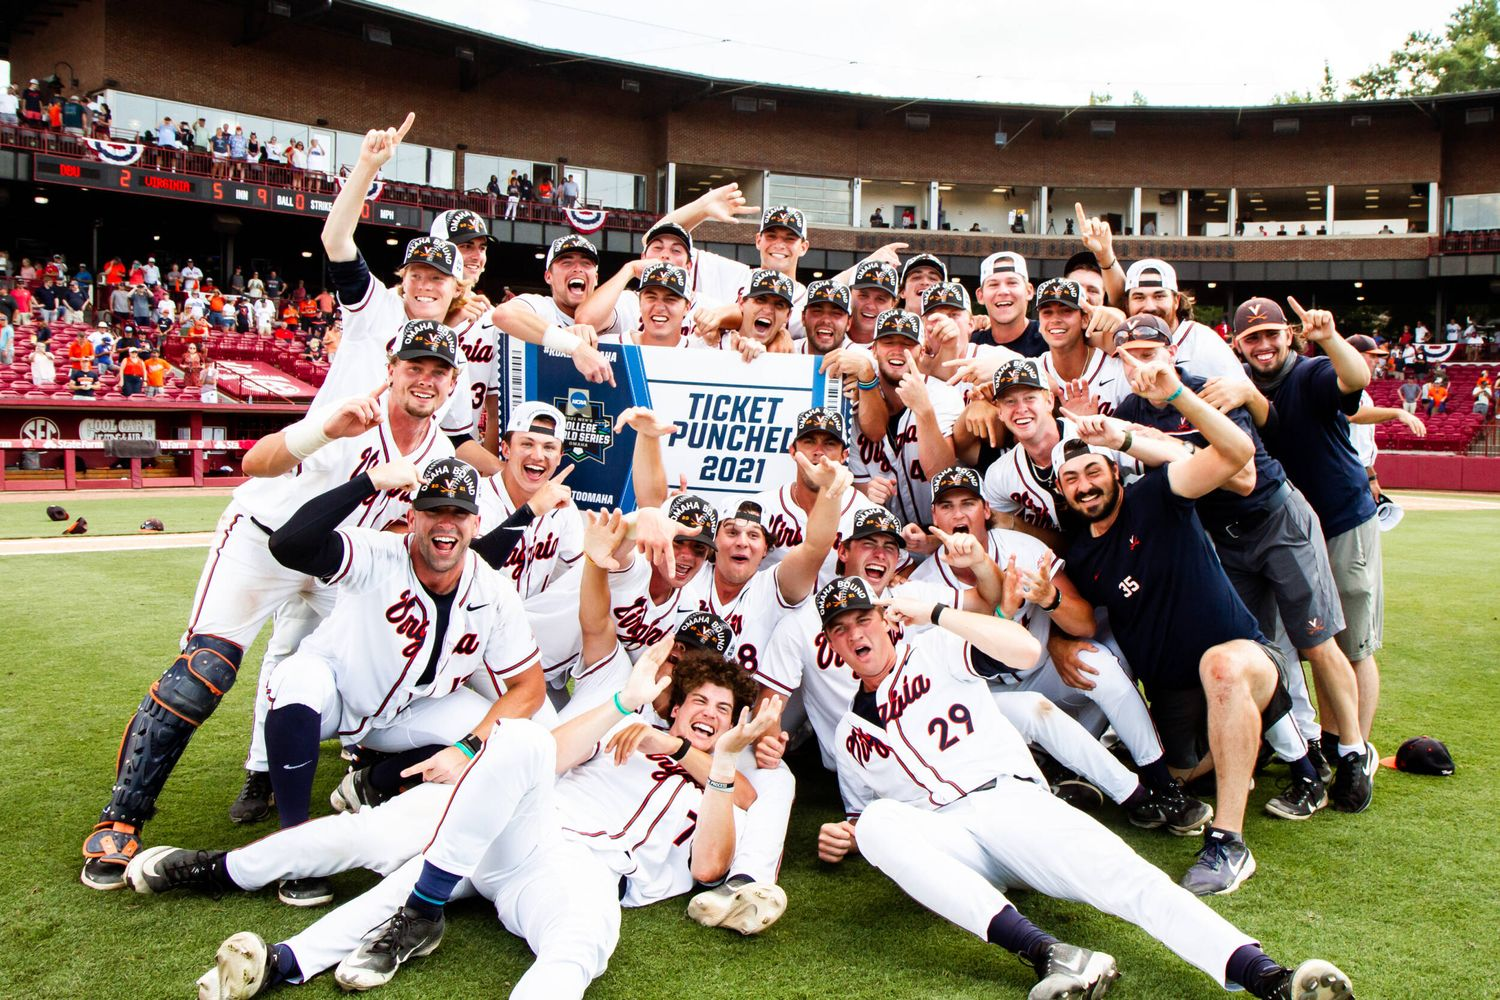 Virginia is in Omaha for the 5th time.